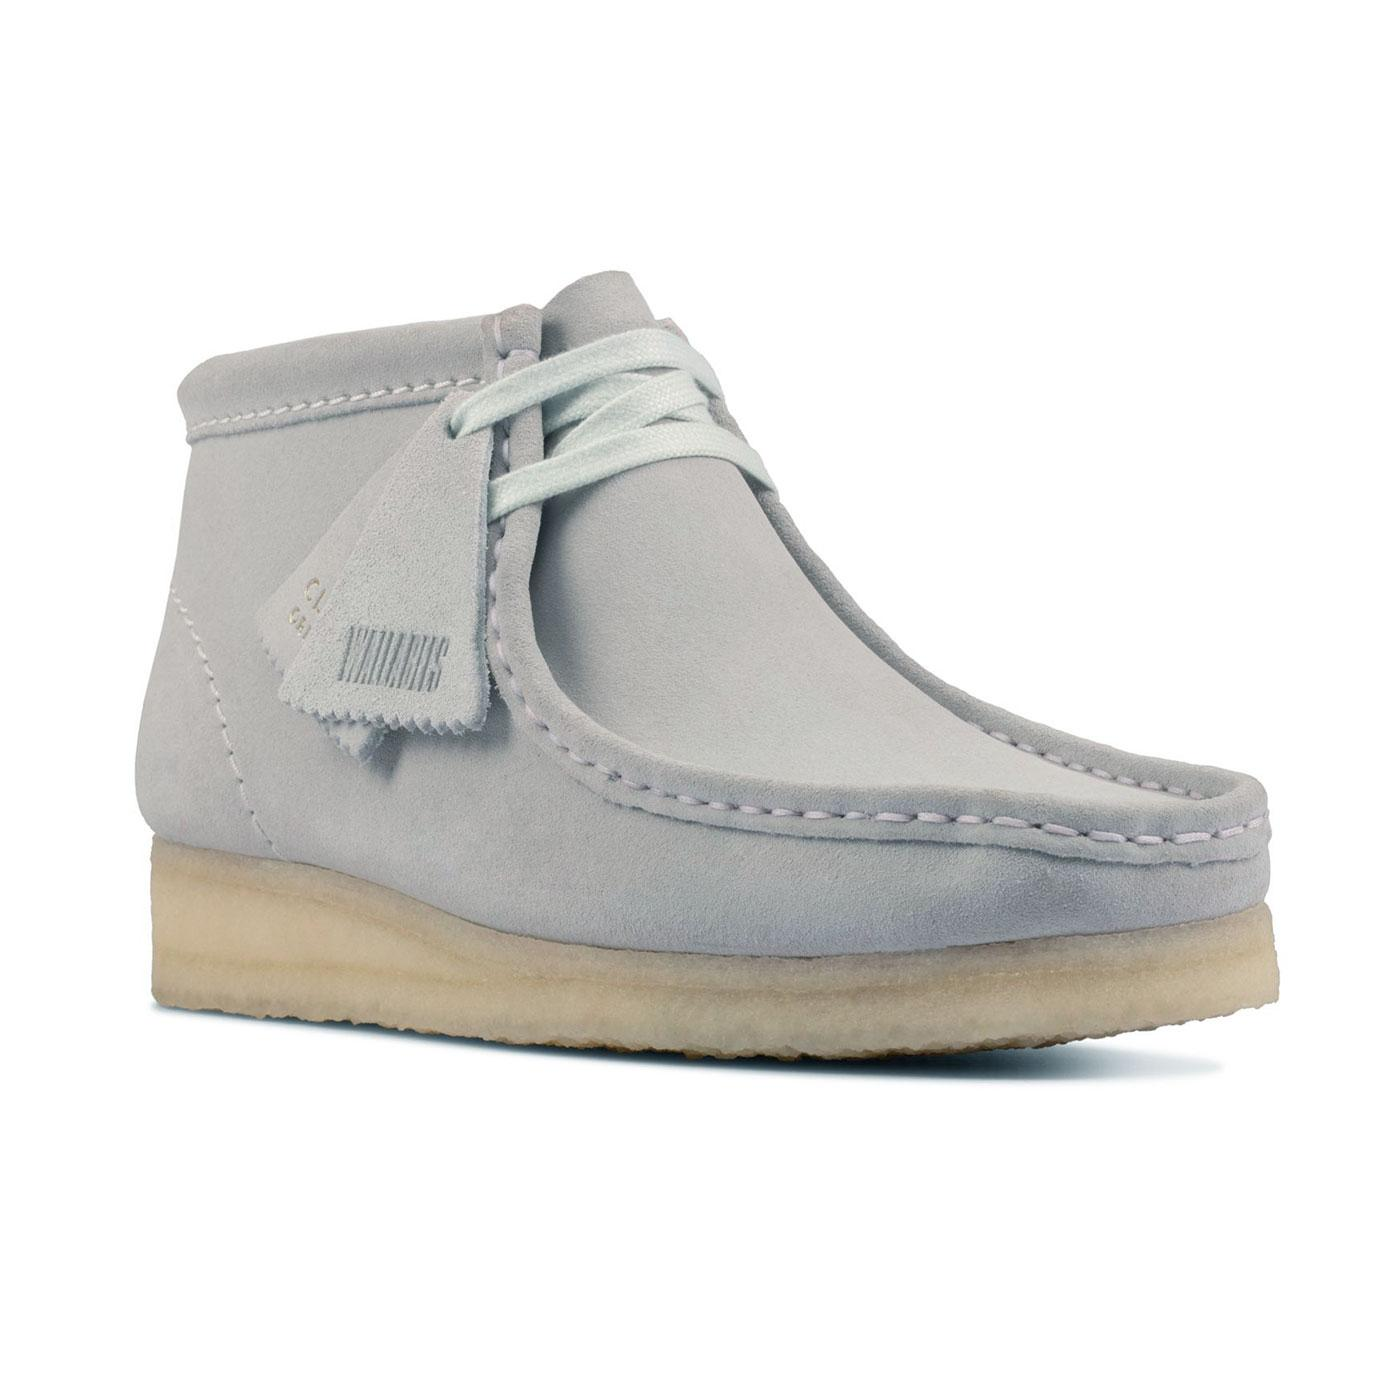 Wallabee Boots CLARKS ORIGINALS Womens Suede Boots